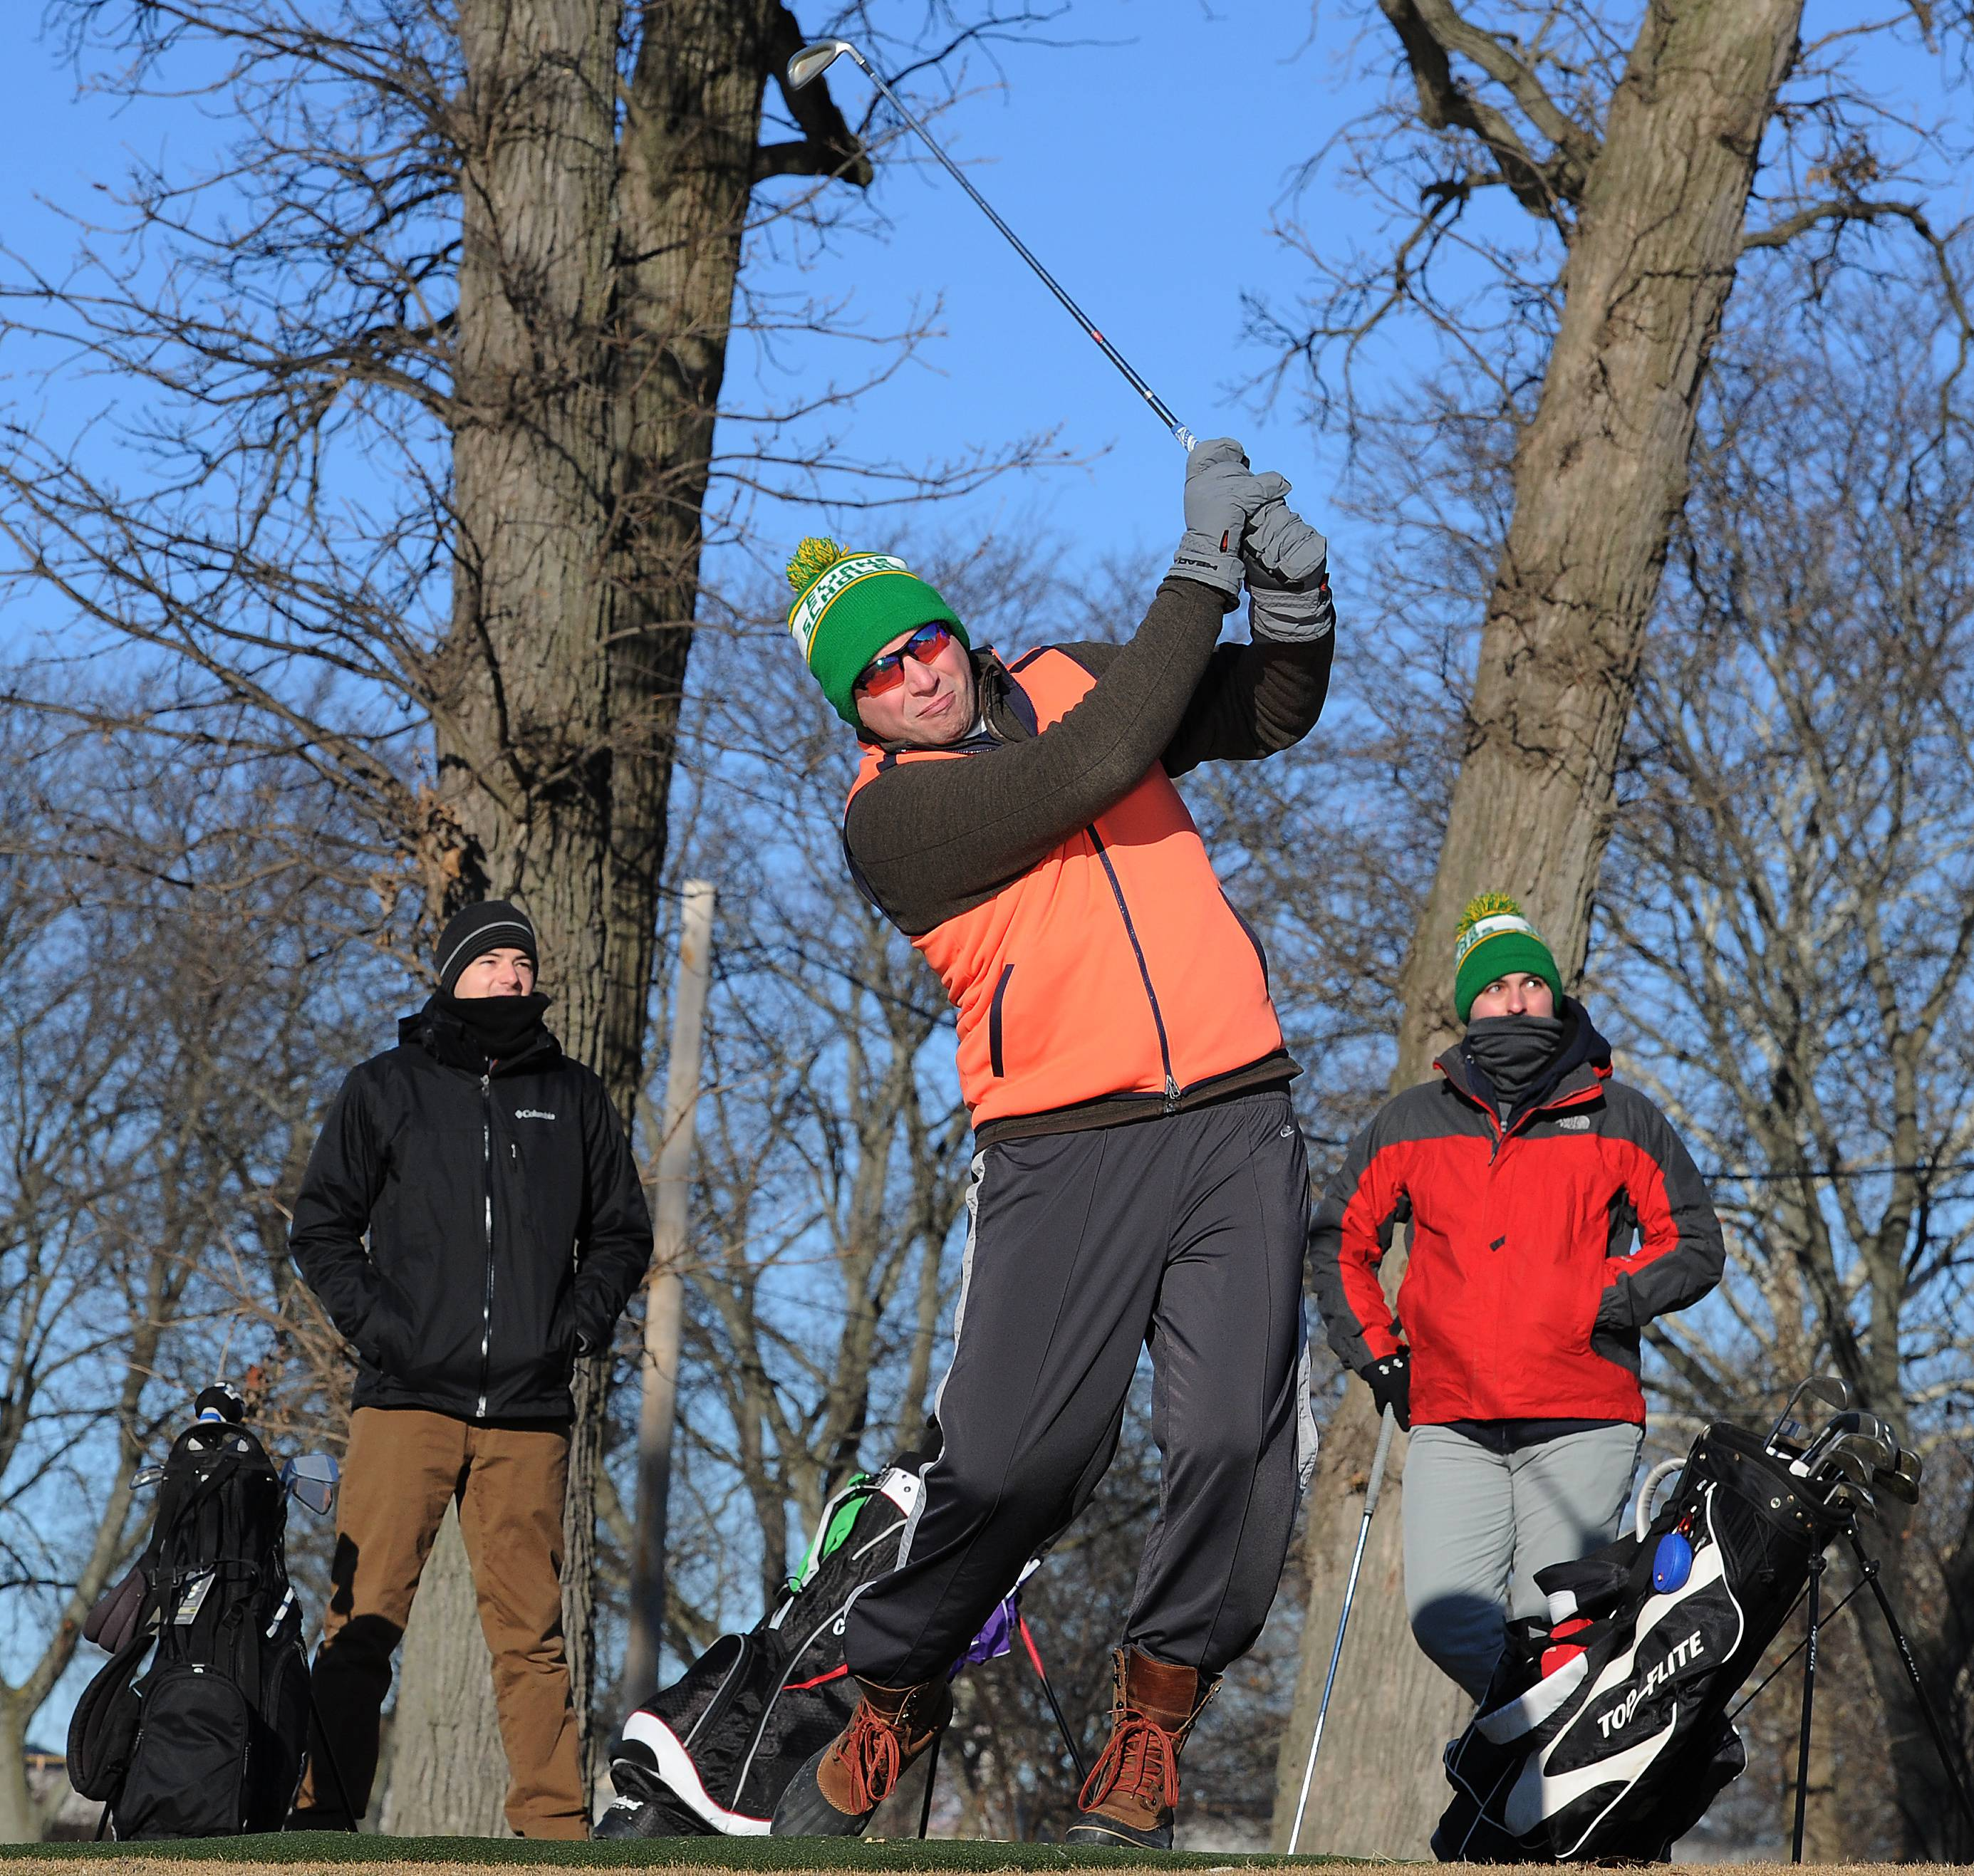 Des Plaines Mayor Matt Bogusz fires off the first shot at the Chili Open event in the brisk 12 degree temperature and January sunshine at the Golf Center in Des Plaines on Saturday.